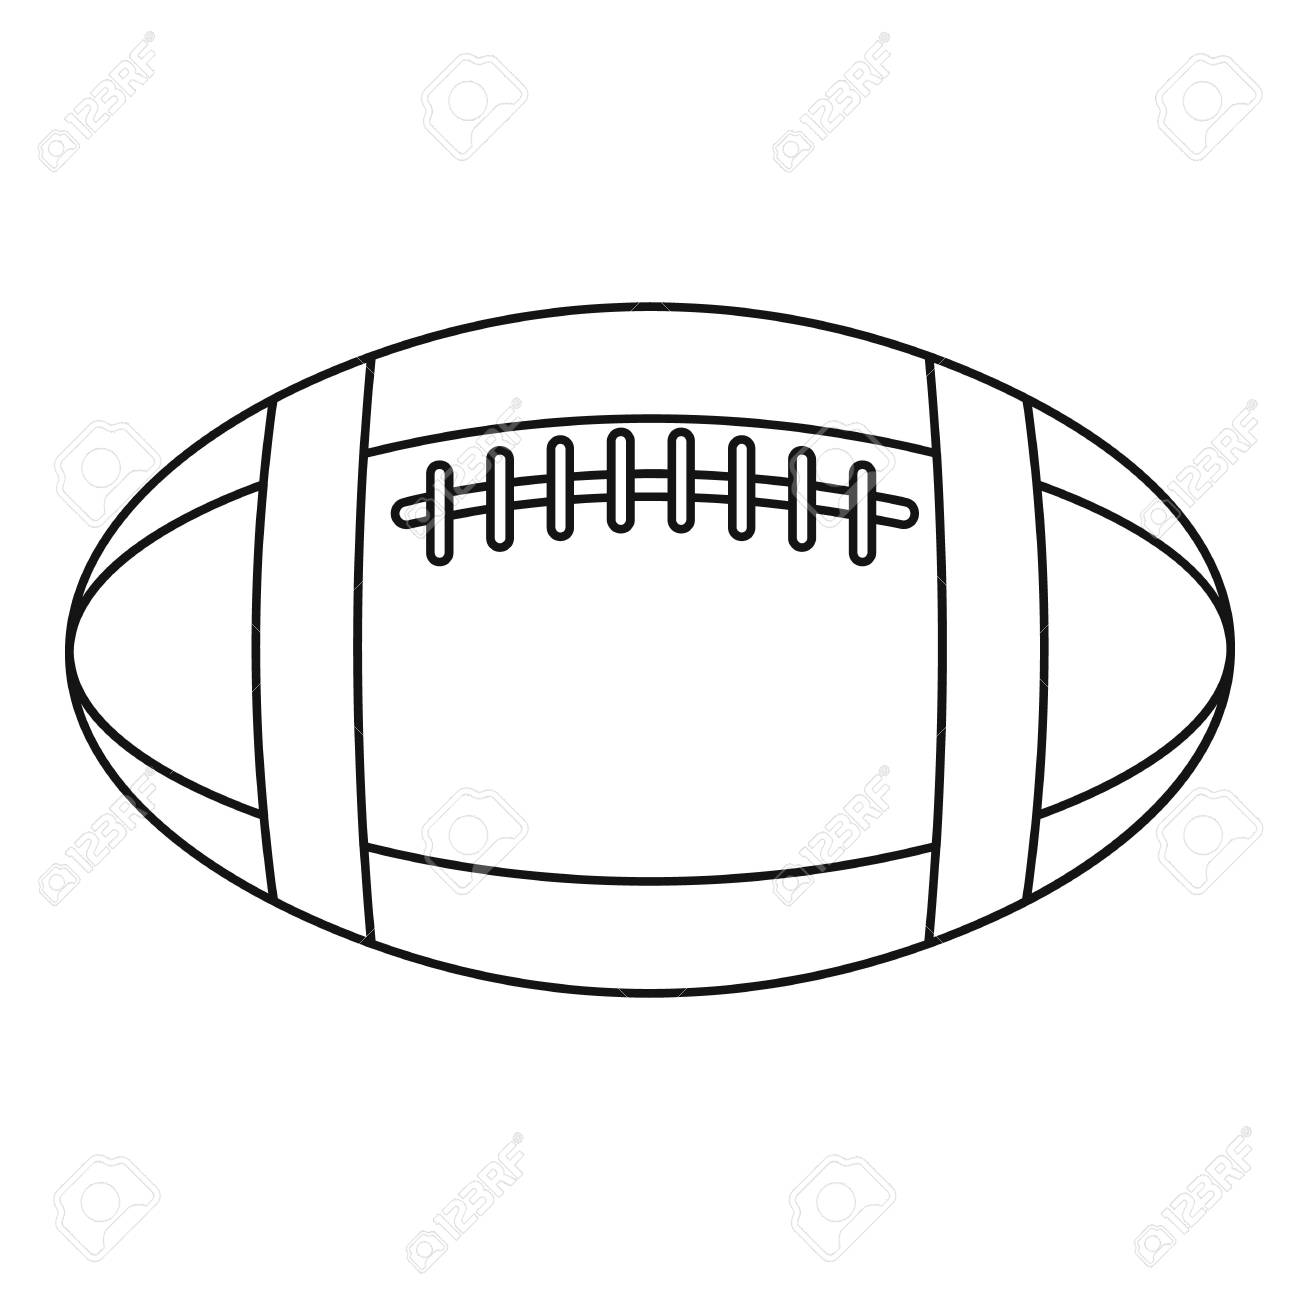 Football Or Rugby Ball Icon Outline Illustration Of Football Royalty Free Cliparts Vectors And Stock Illustration Image 74964861